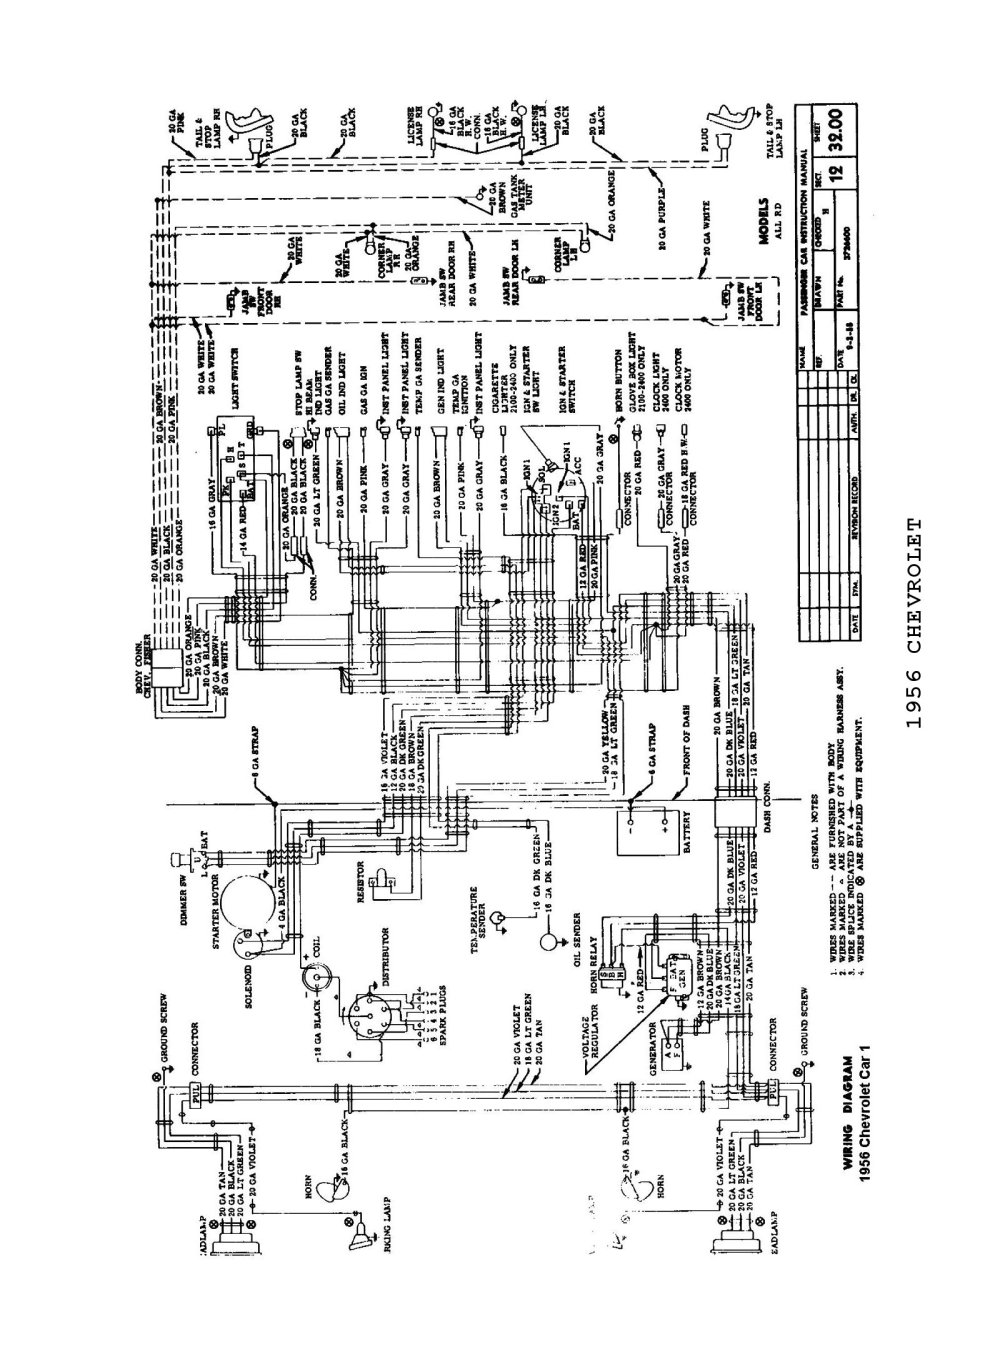 medium resolution of 1959 oldsmobile wiring diagram